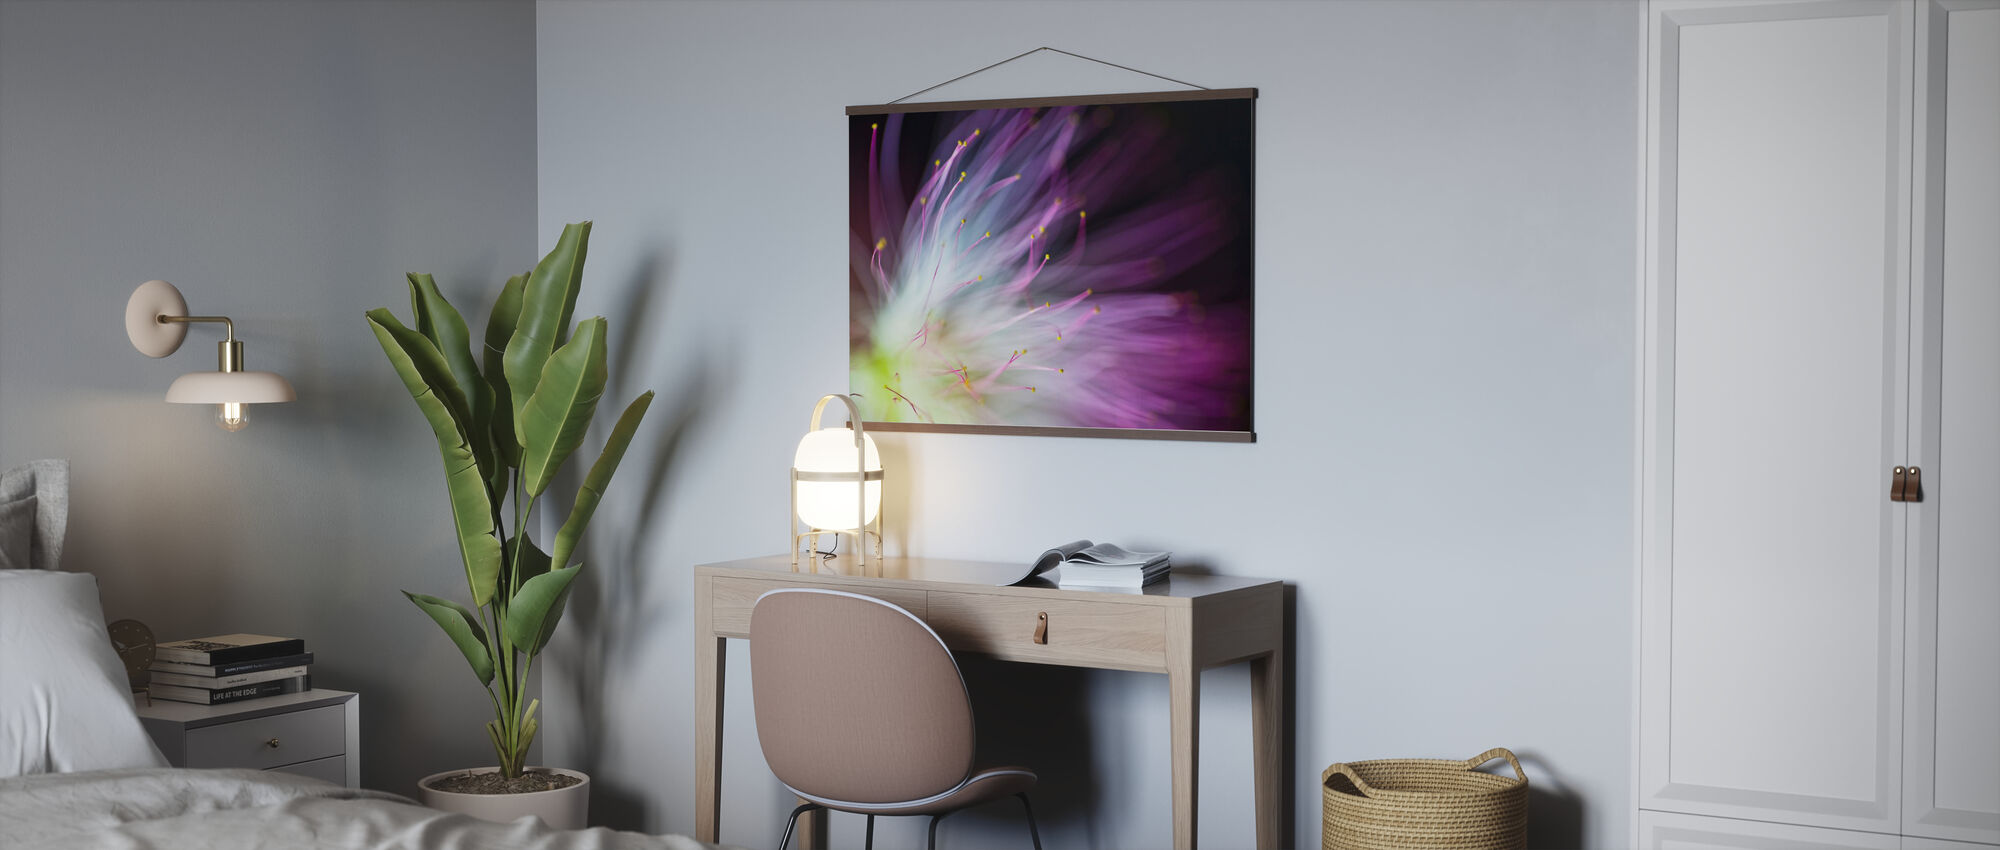 Will o he Wisp - Poster - Office